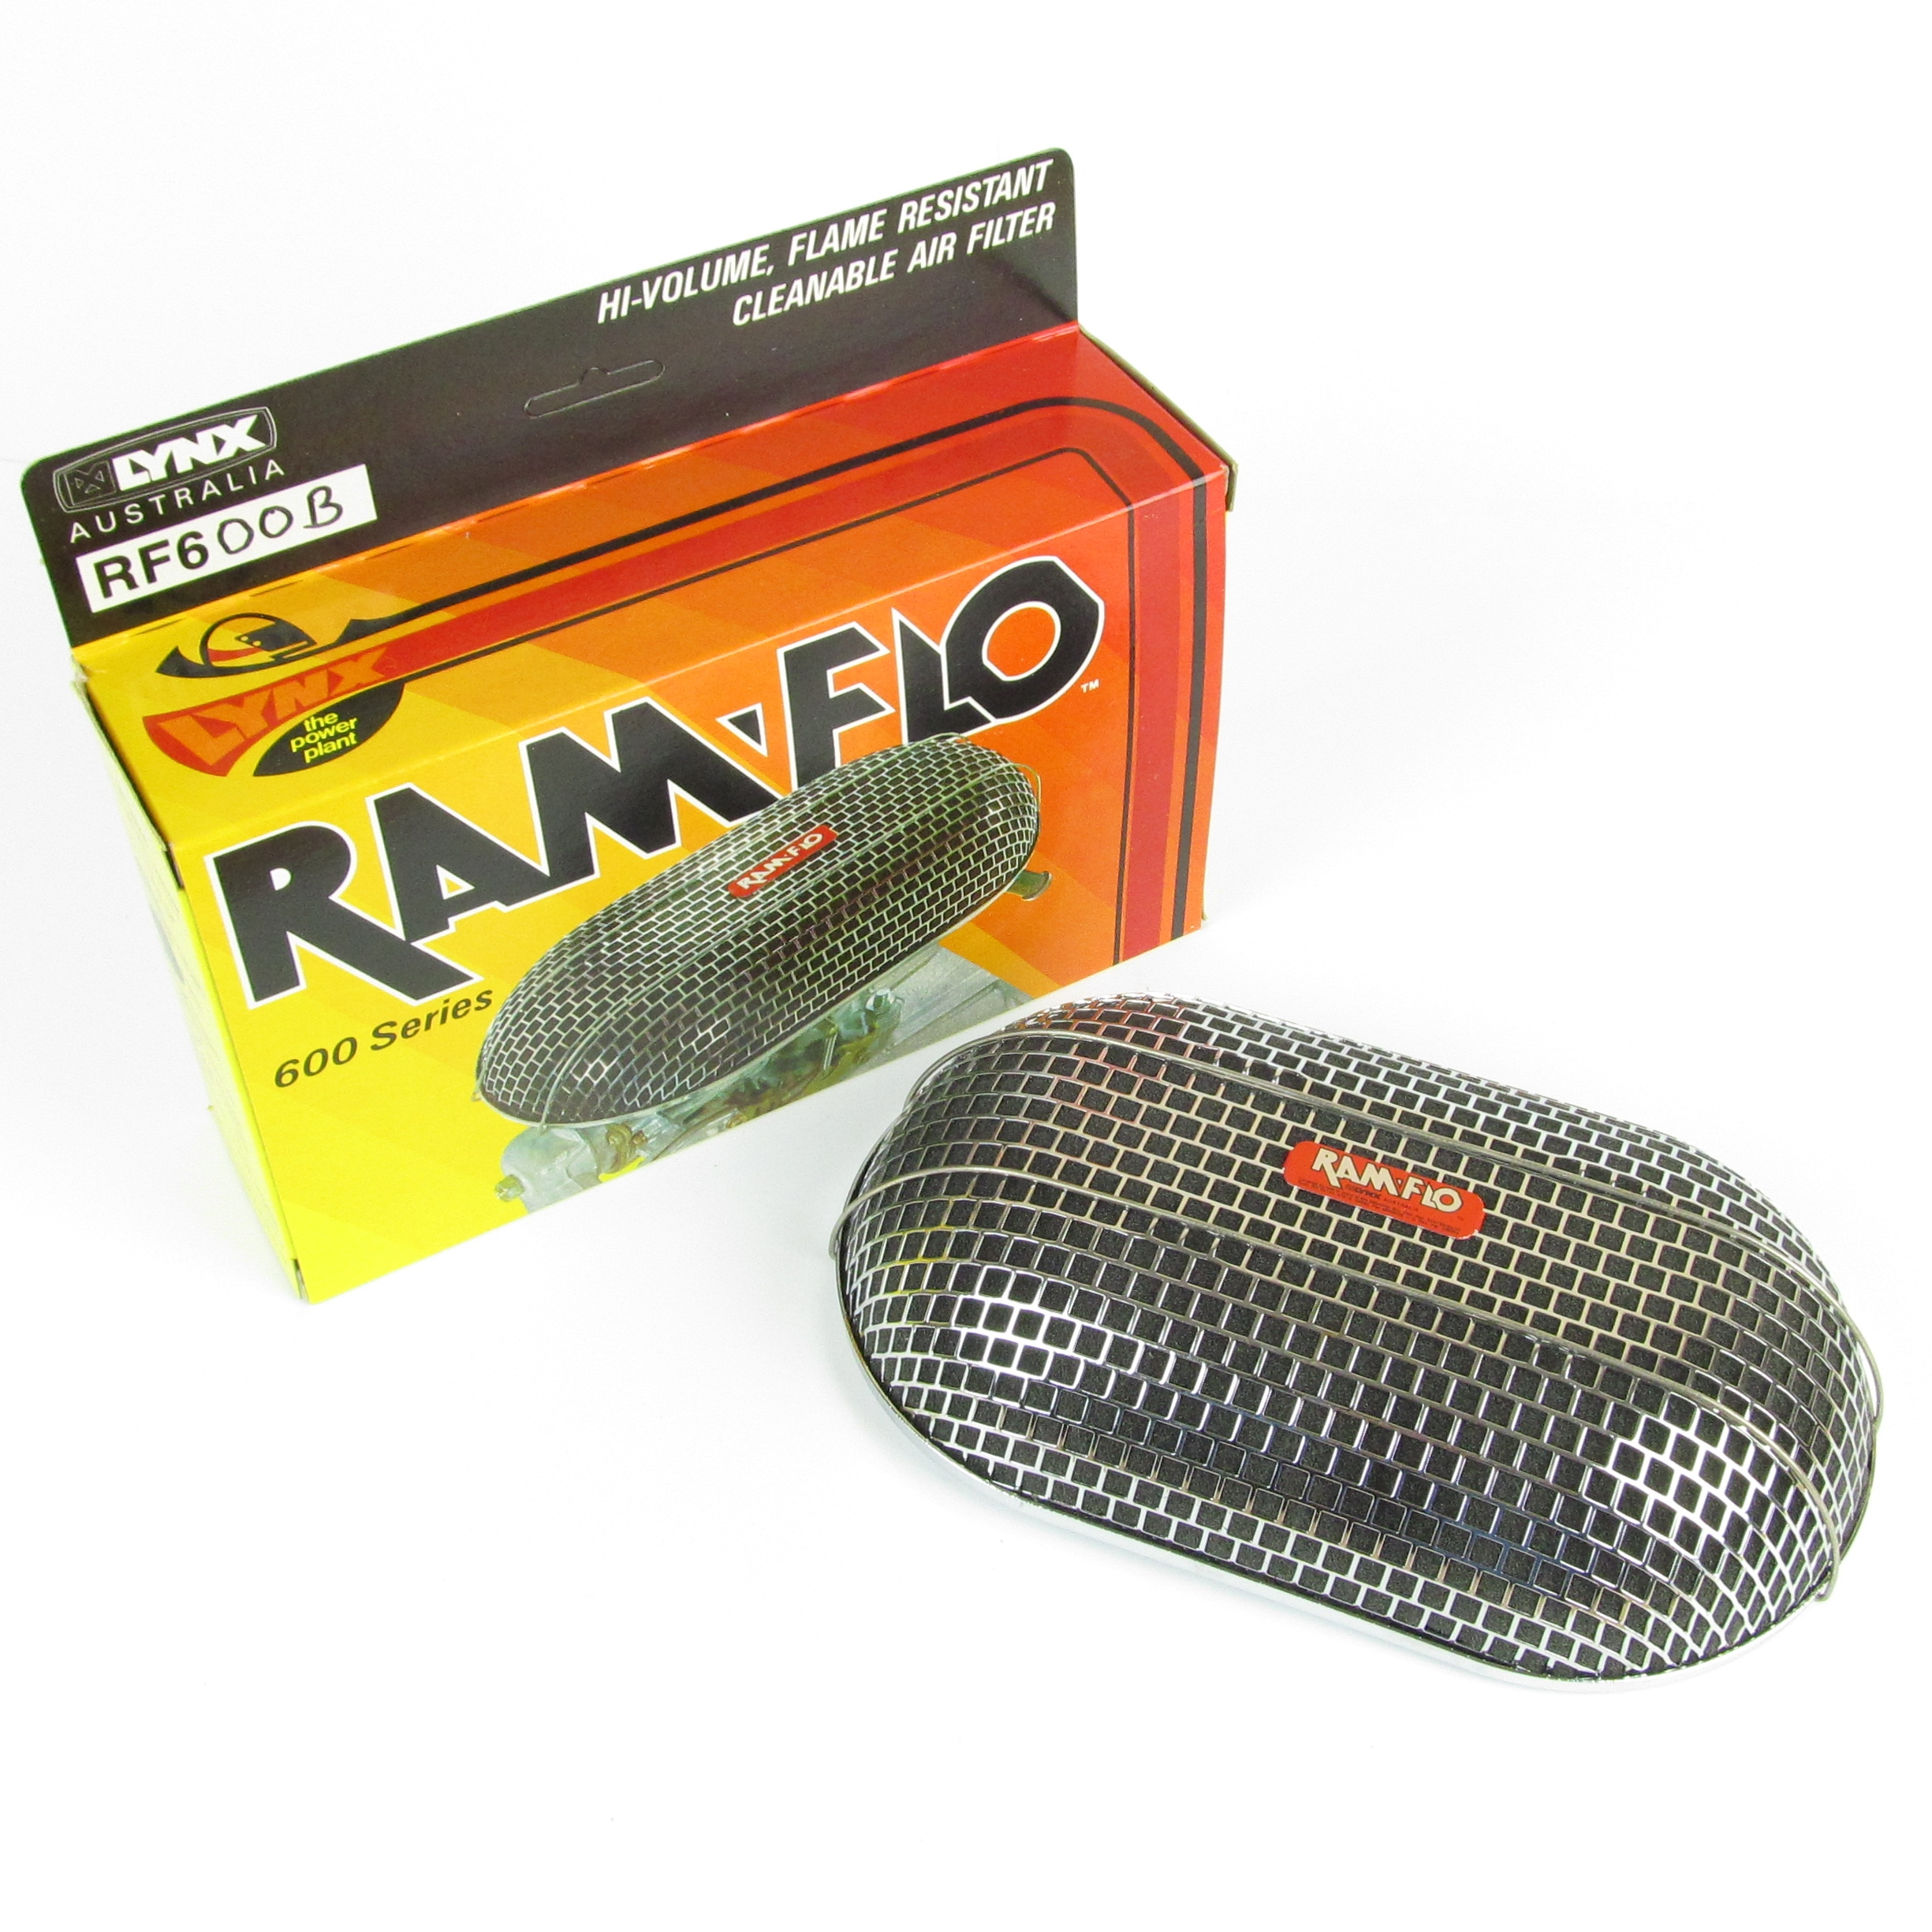 LYNX RAMFLO CARBURETTORIA AIRE FILTER / CLEANER WITH BLANK DIY 'BACKPLATE / CONSTRUVIVE SU PROPIO